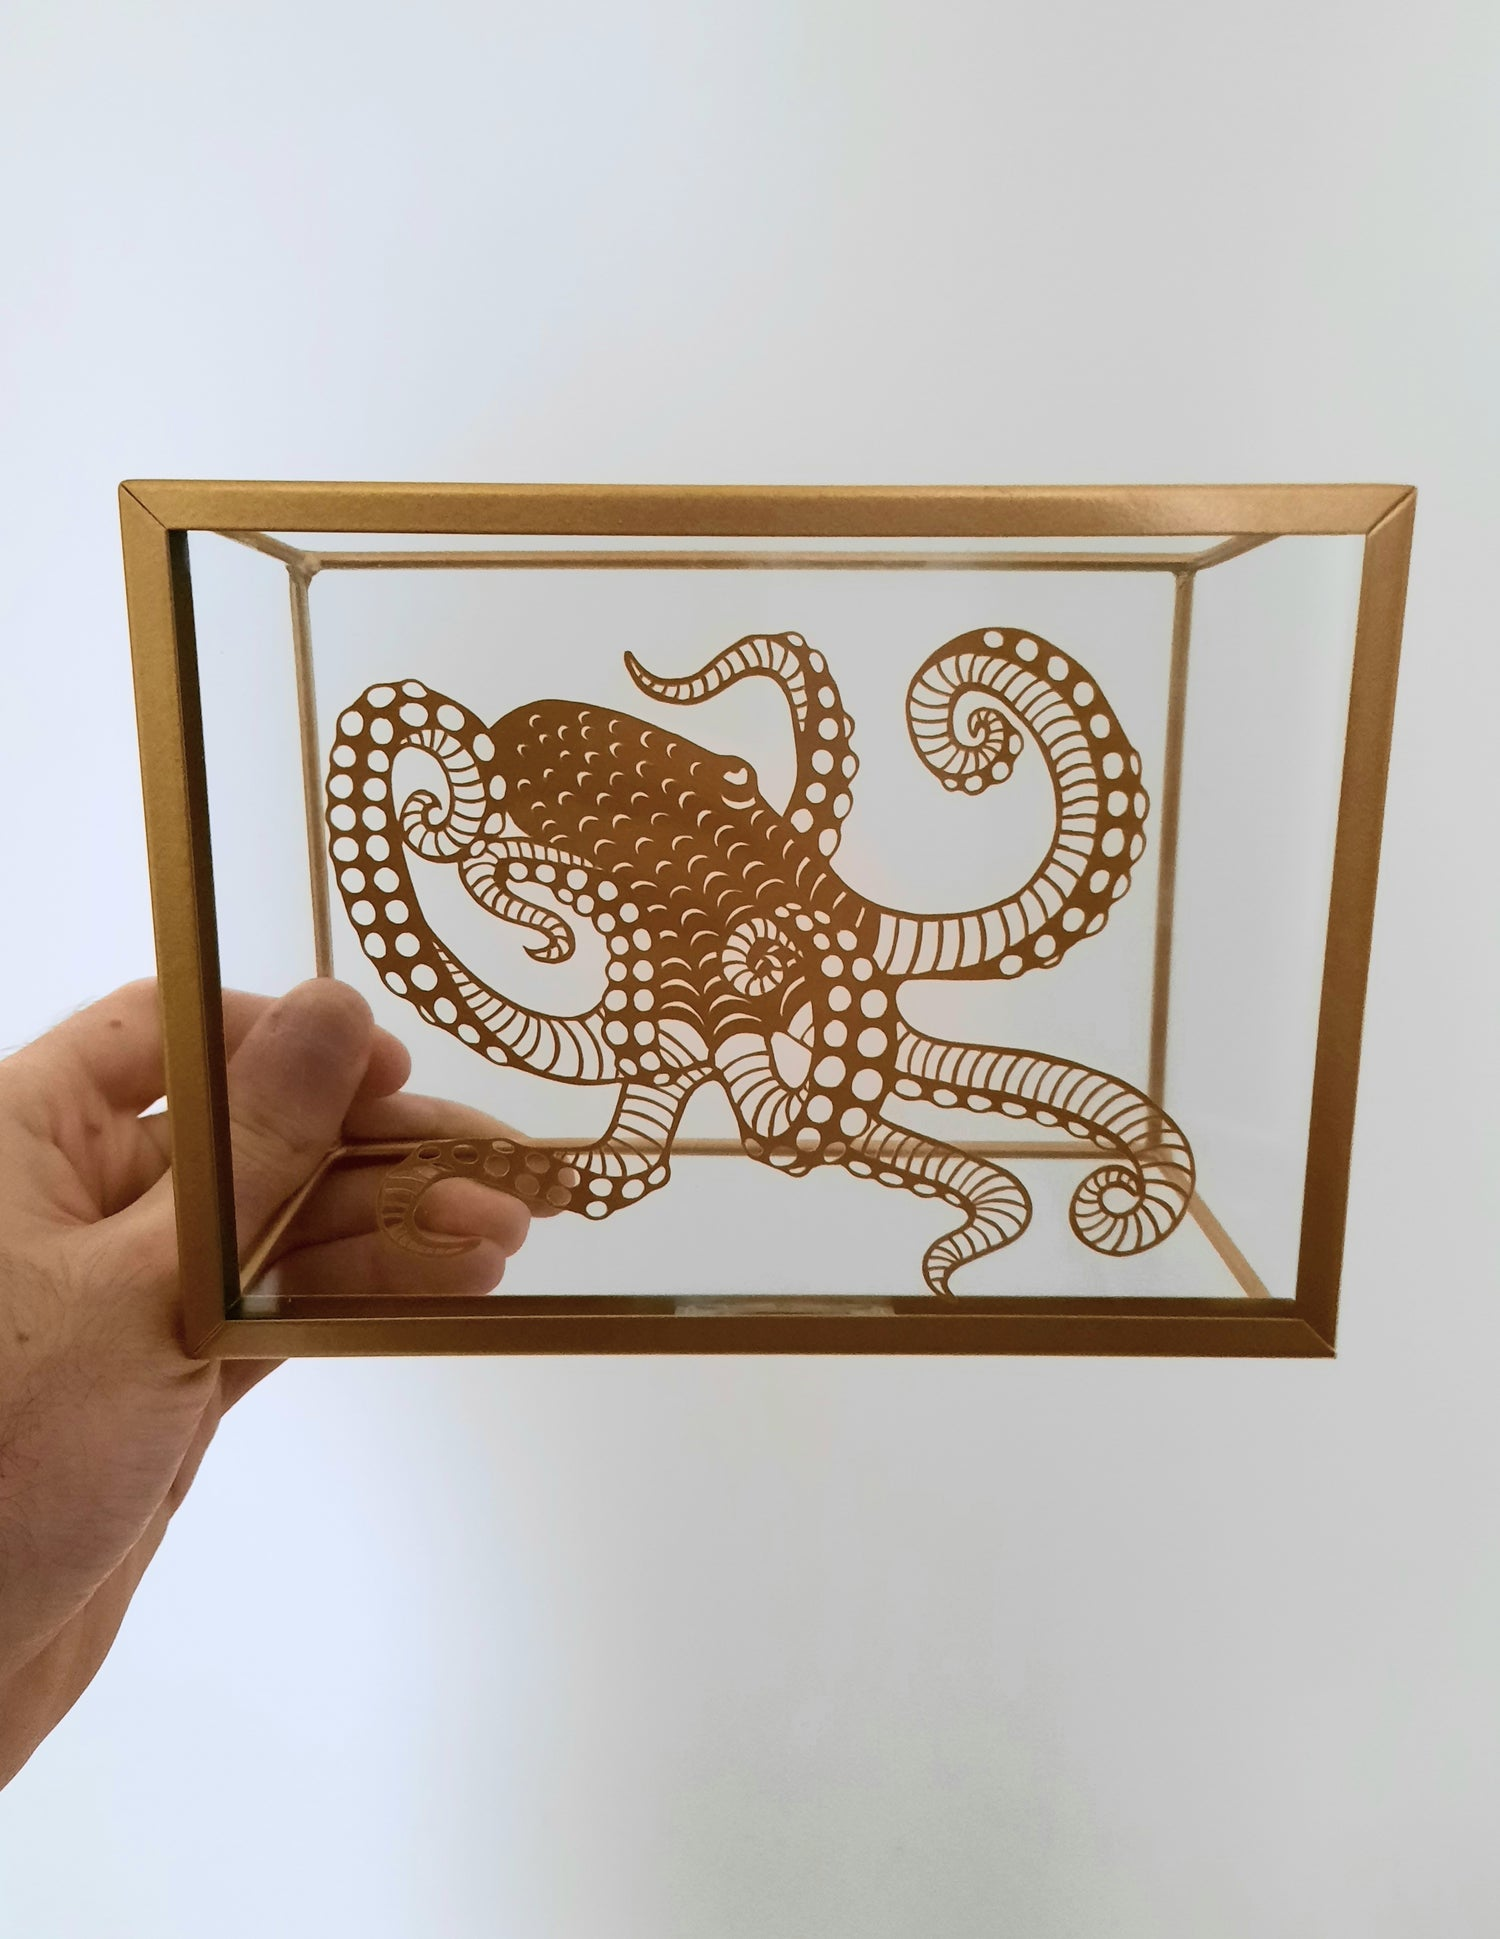 Image of Framed Octopus Paper Cutting